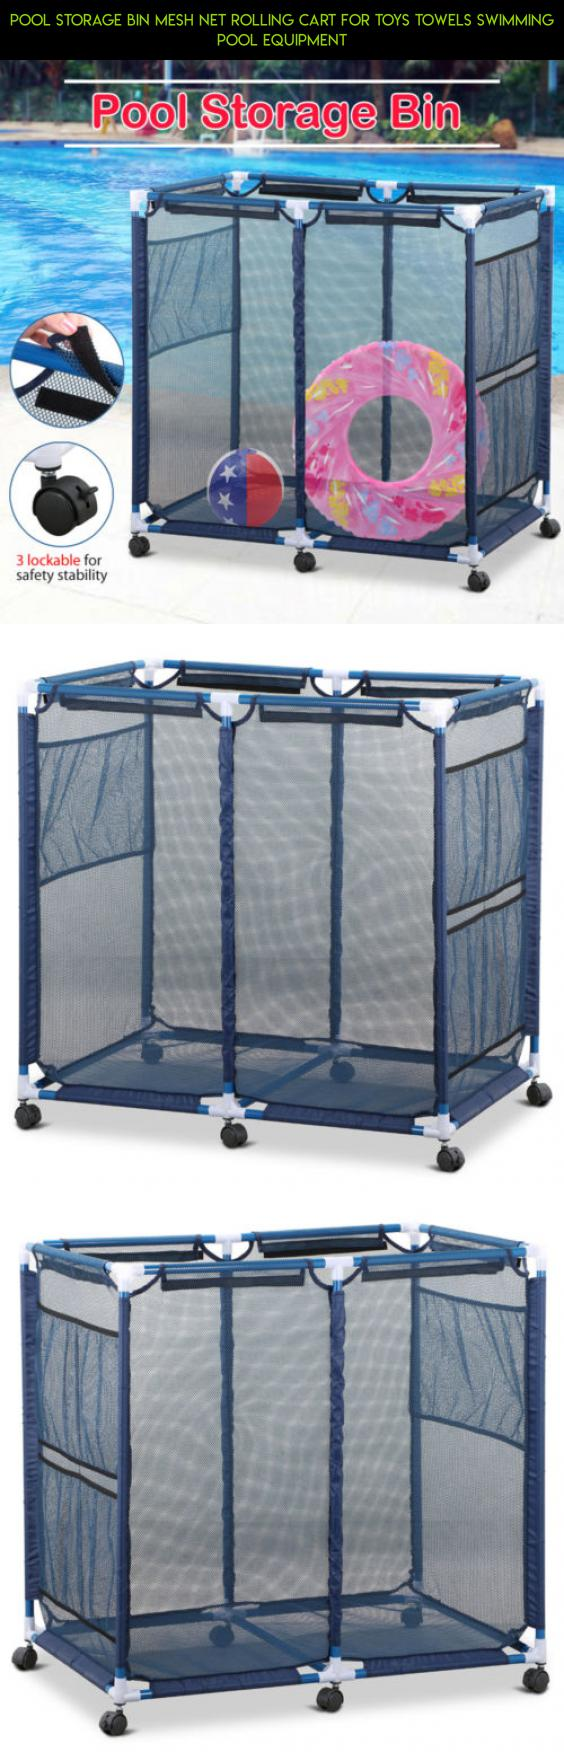 Pool Storage Bin Mesh Net Rolling Cart For Toys Towels Swimming Pool  Equipment #toy #